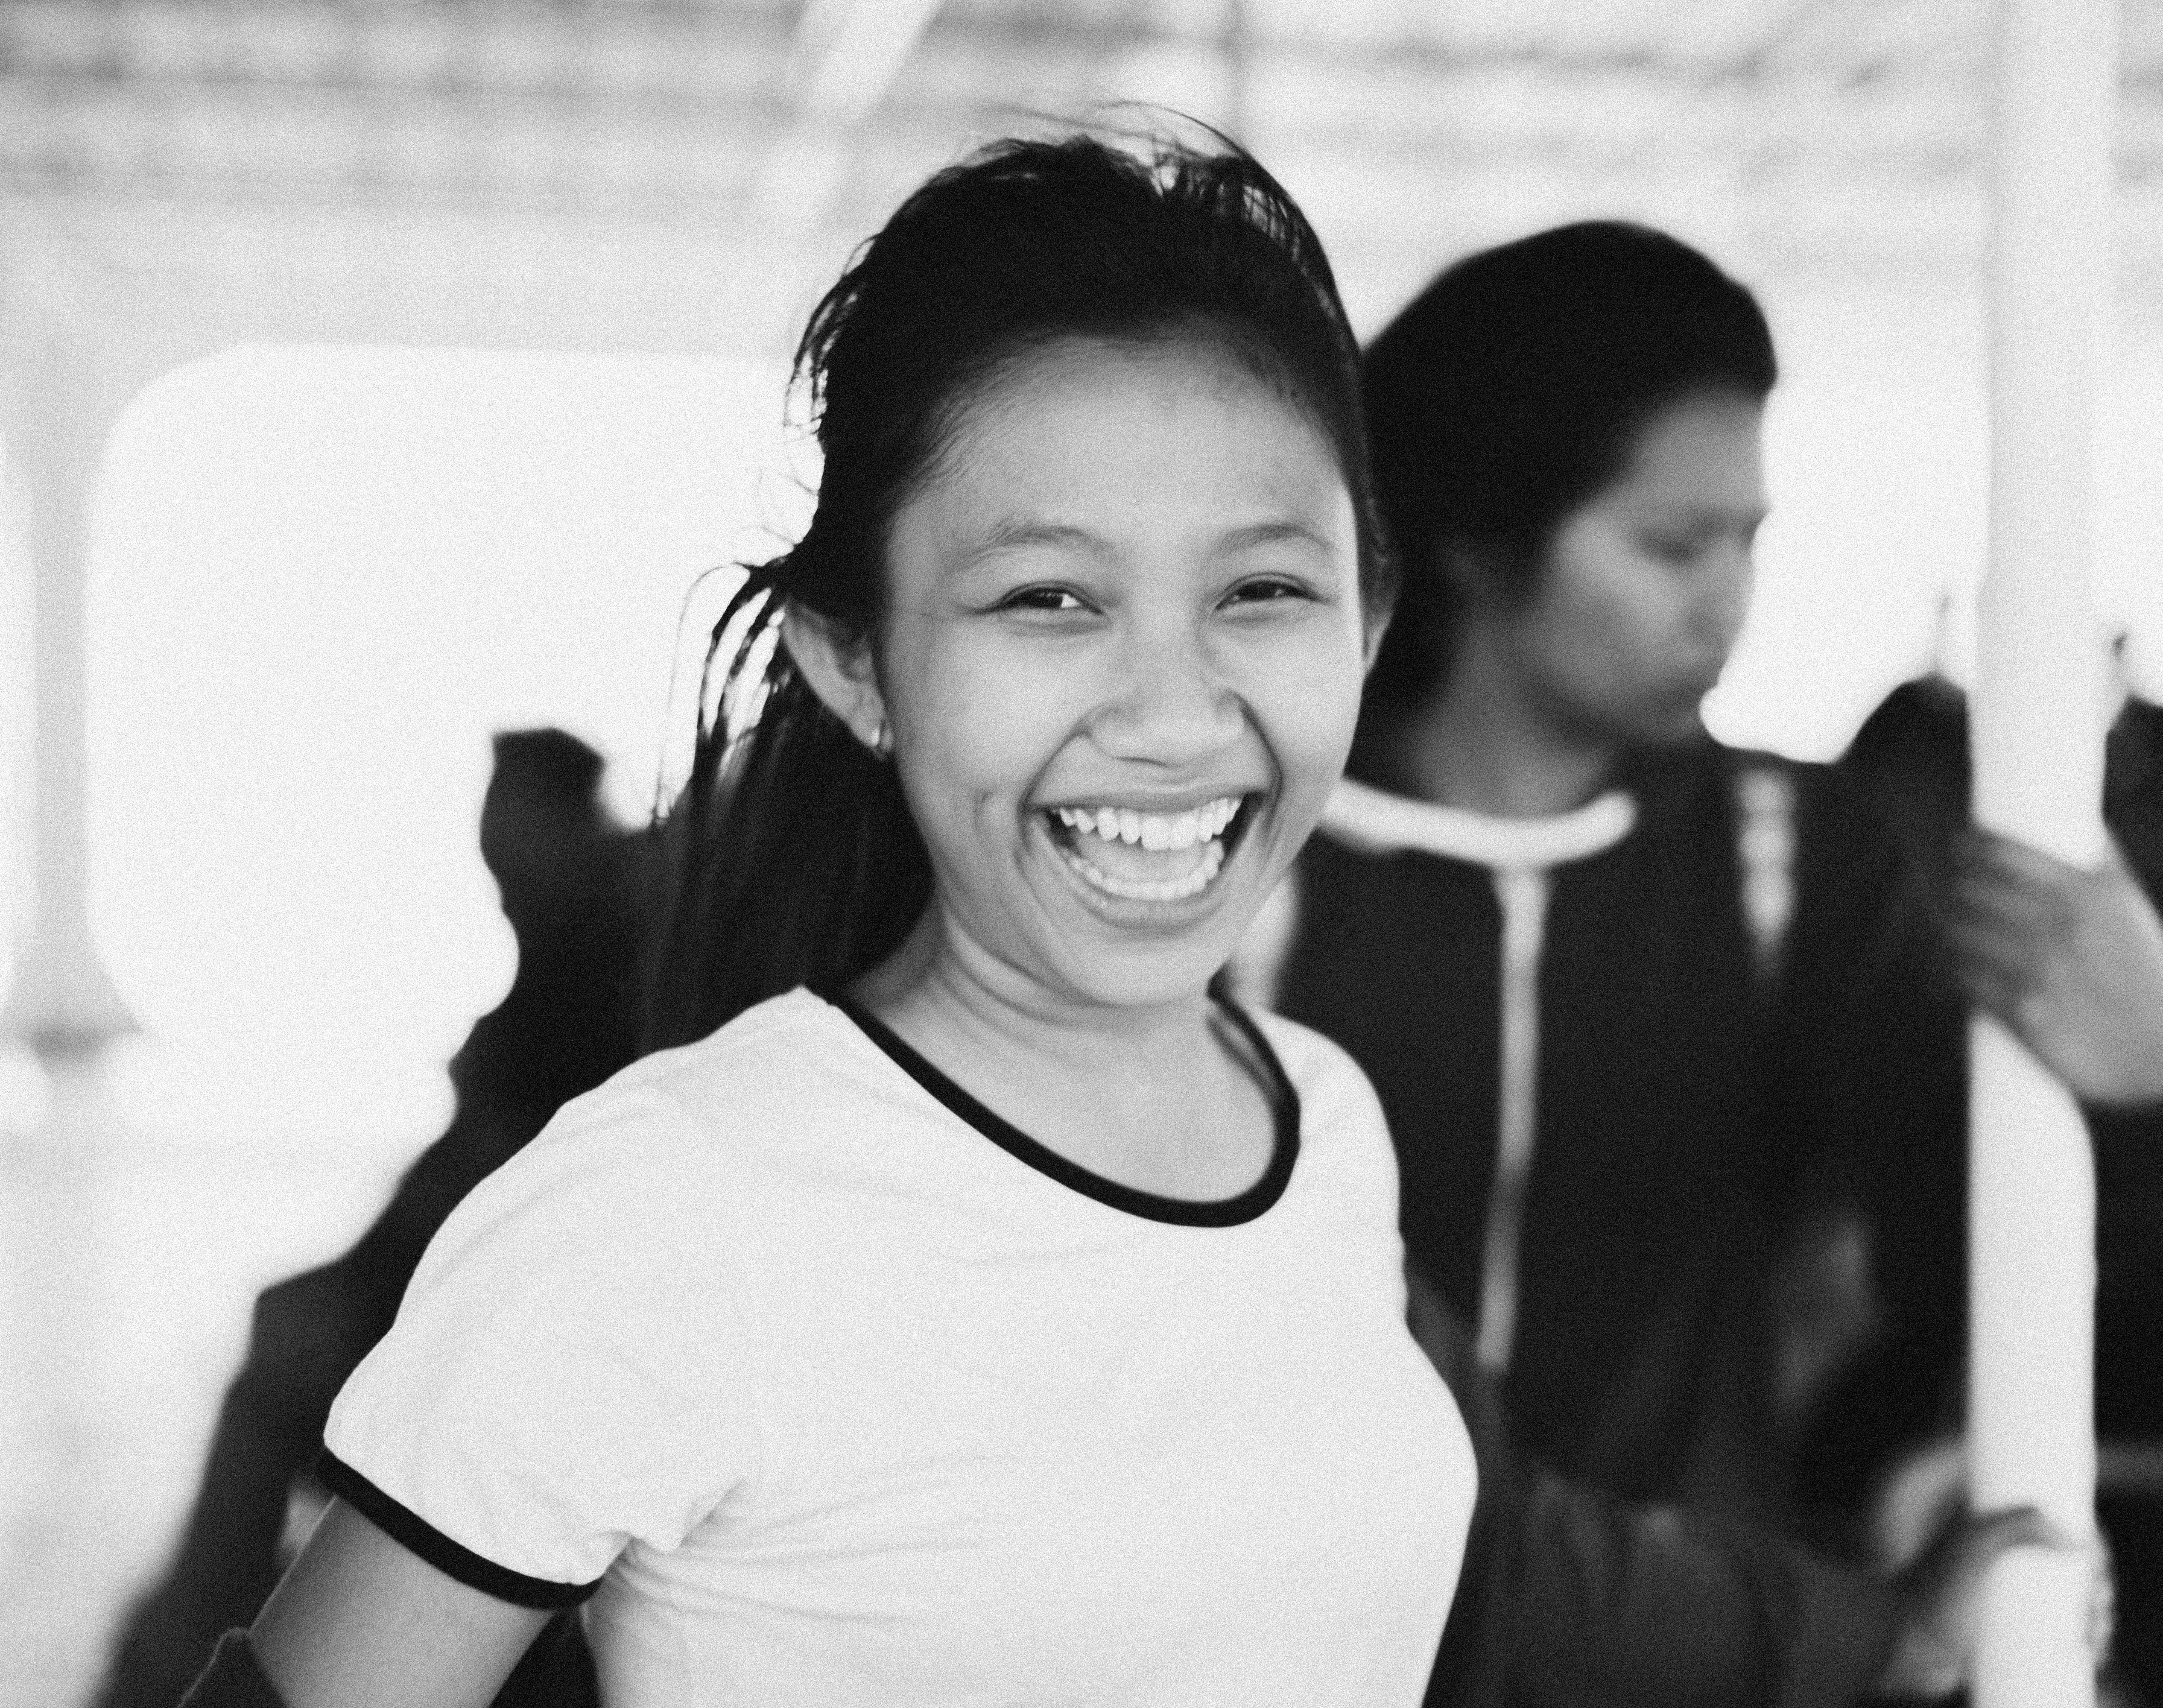 Grayscale Photography of Smiling Woman